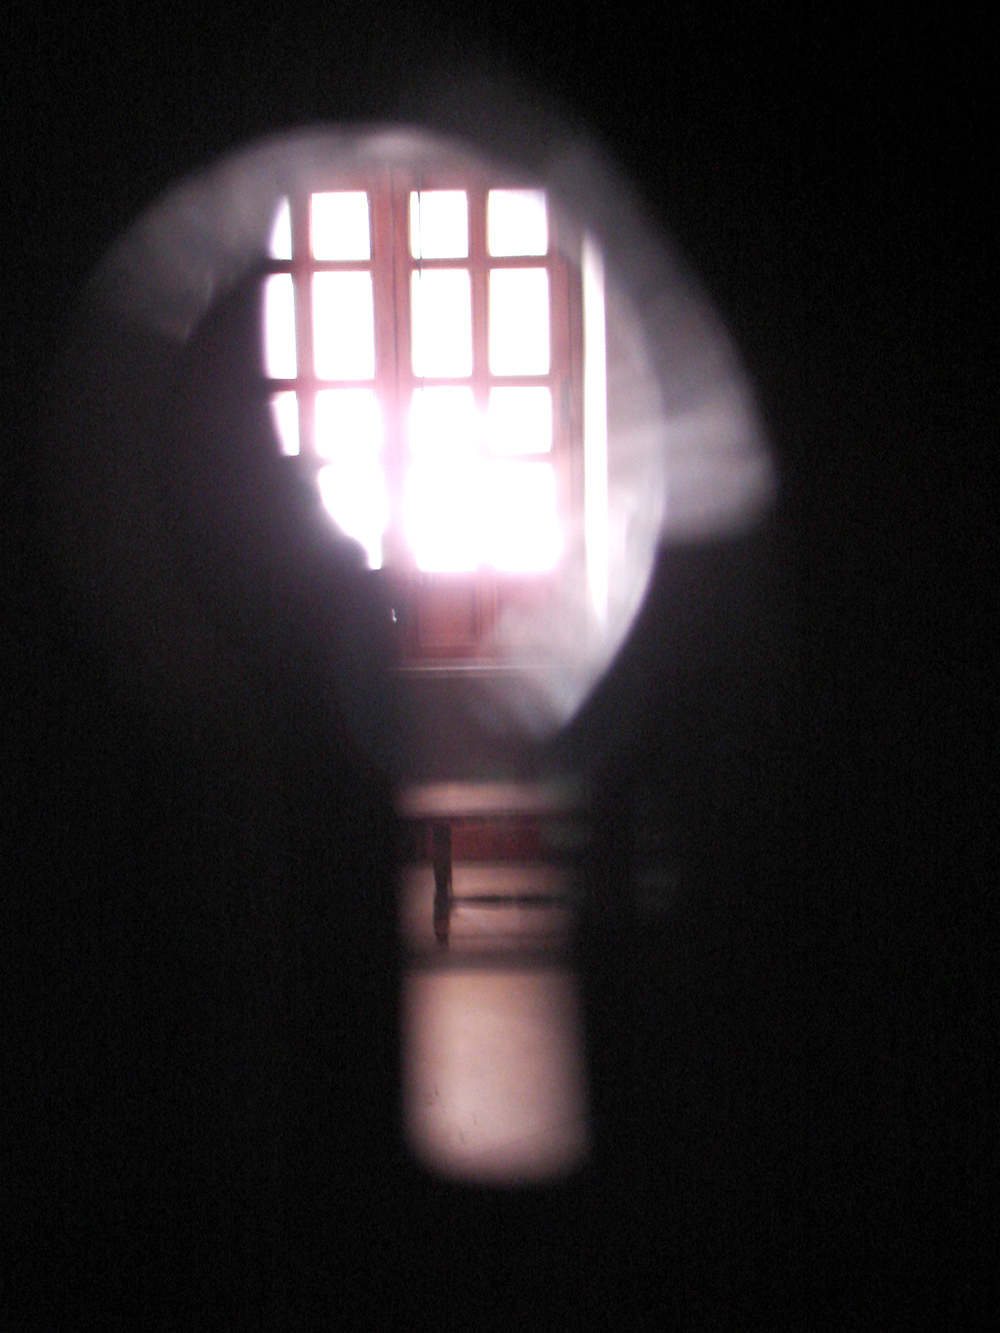 Through the keyhole.